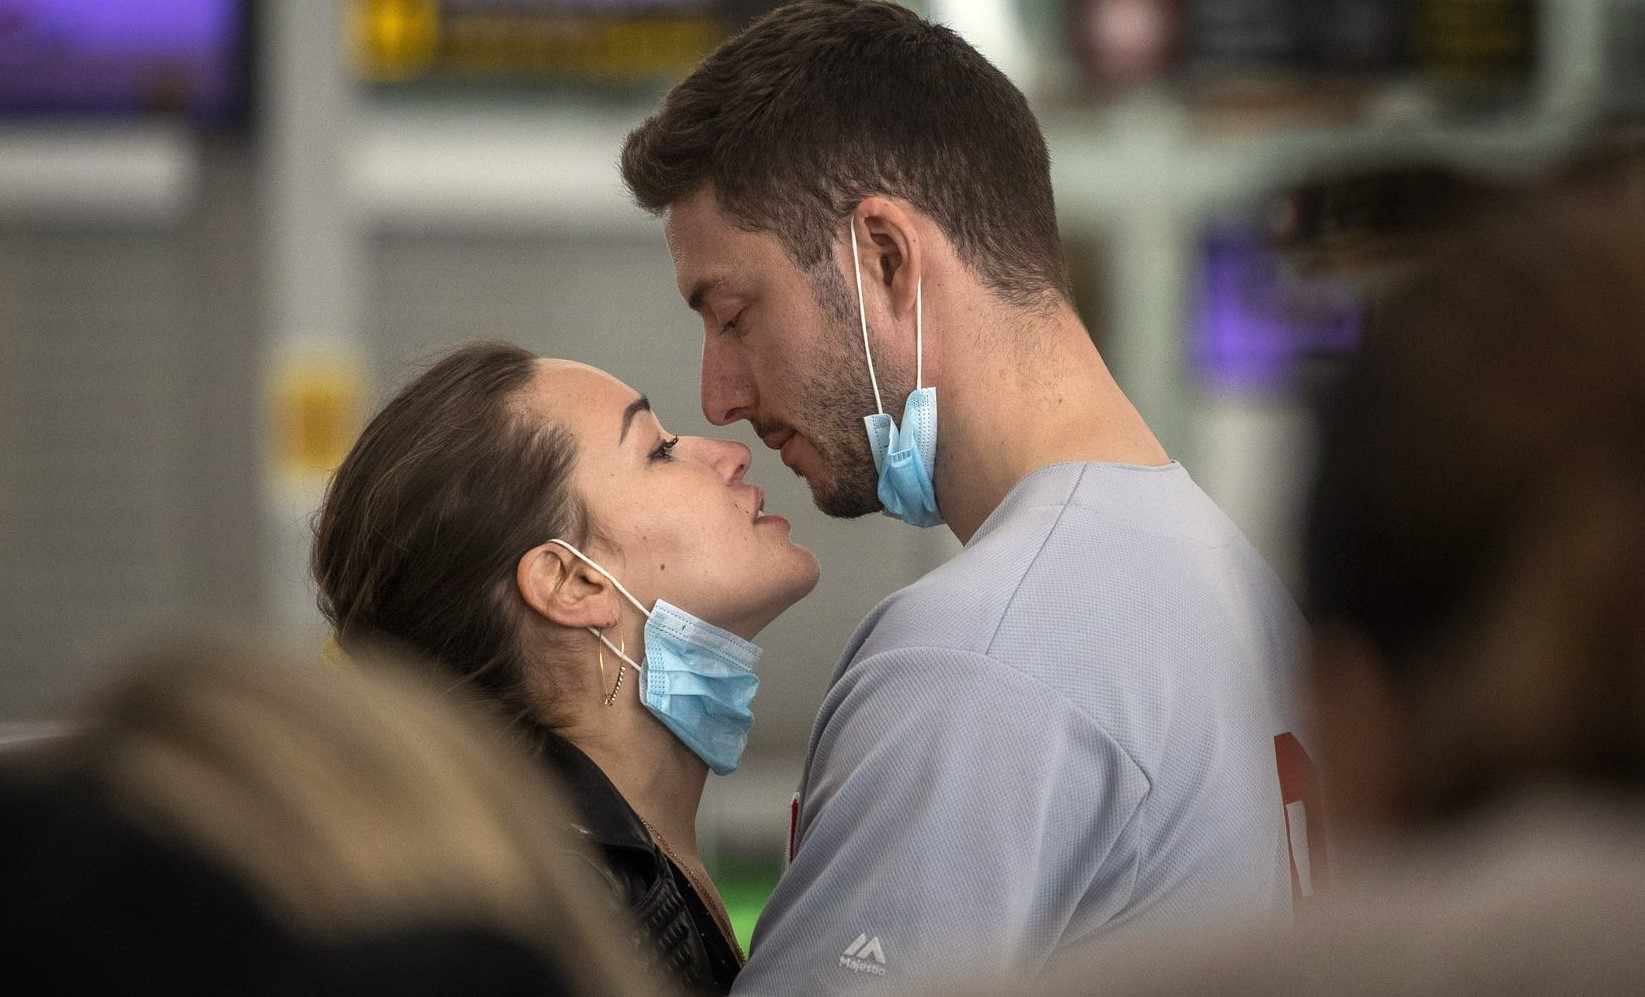 Doctor Couple's Photograph In The Epidemic Of Corona